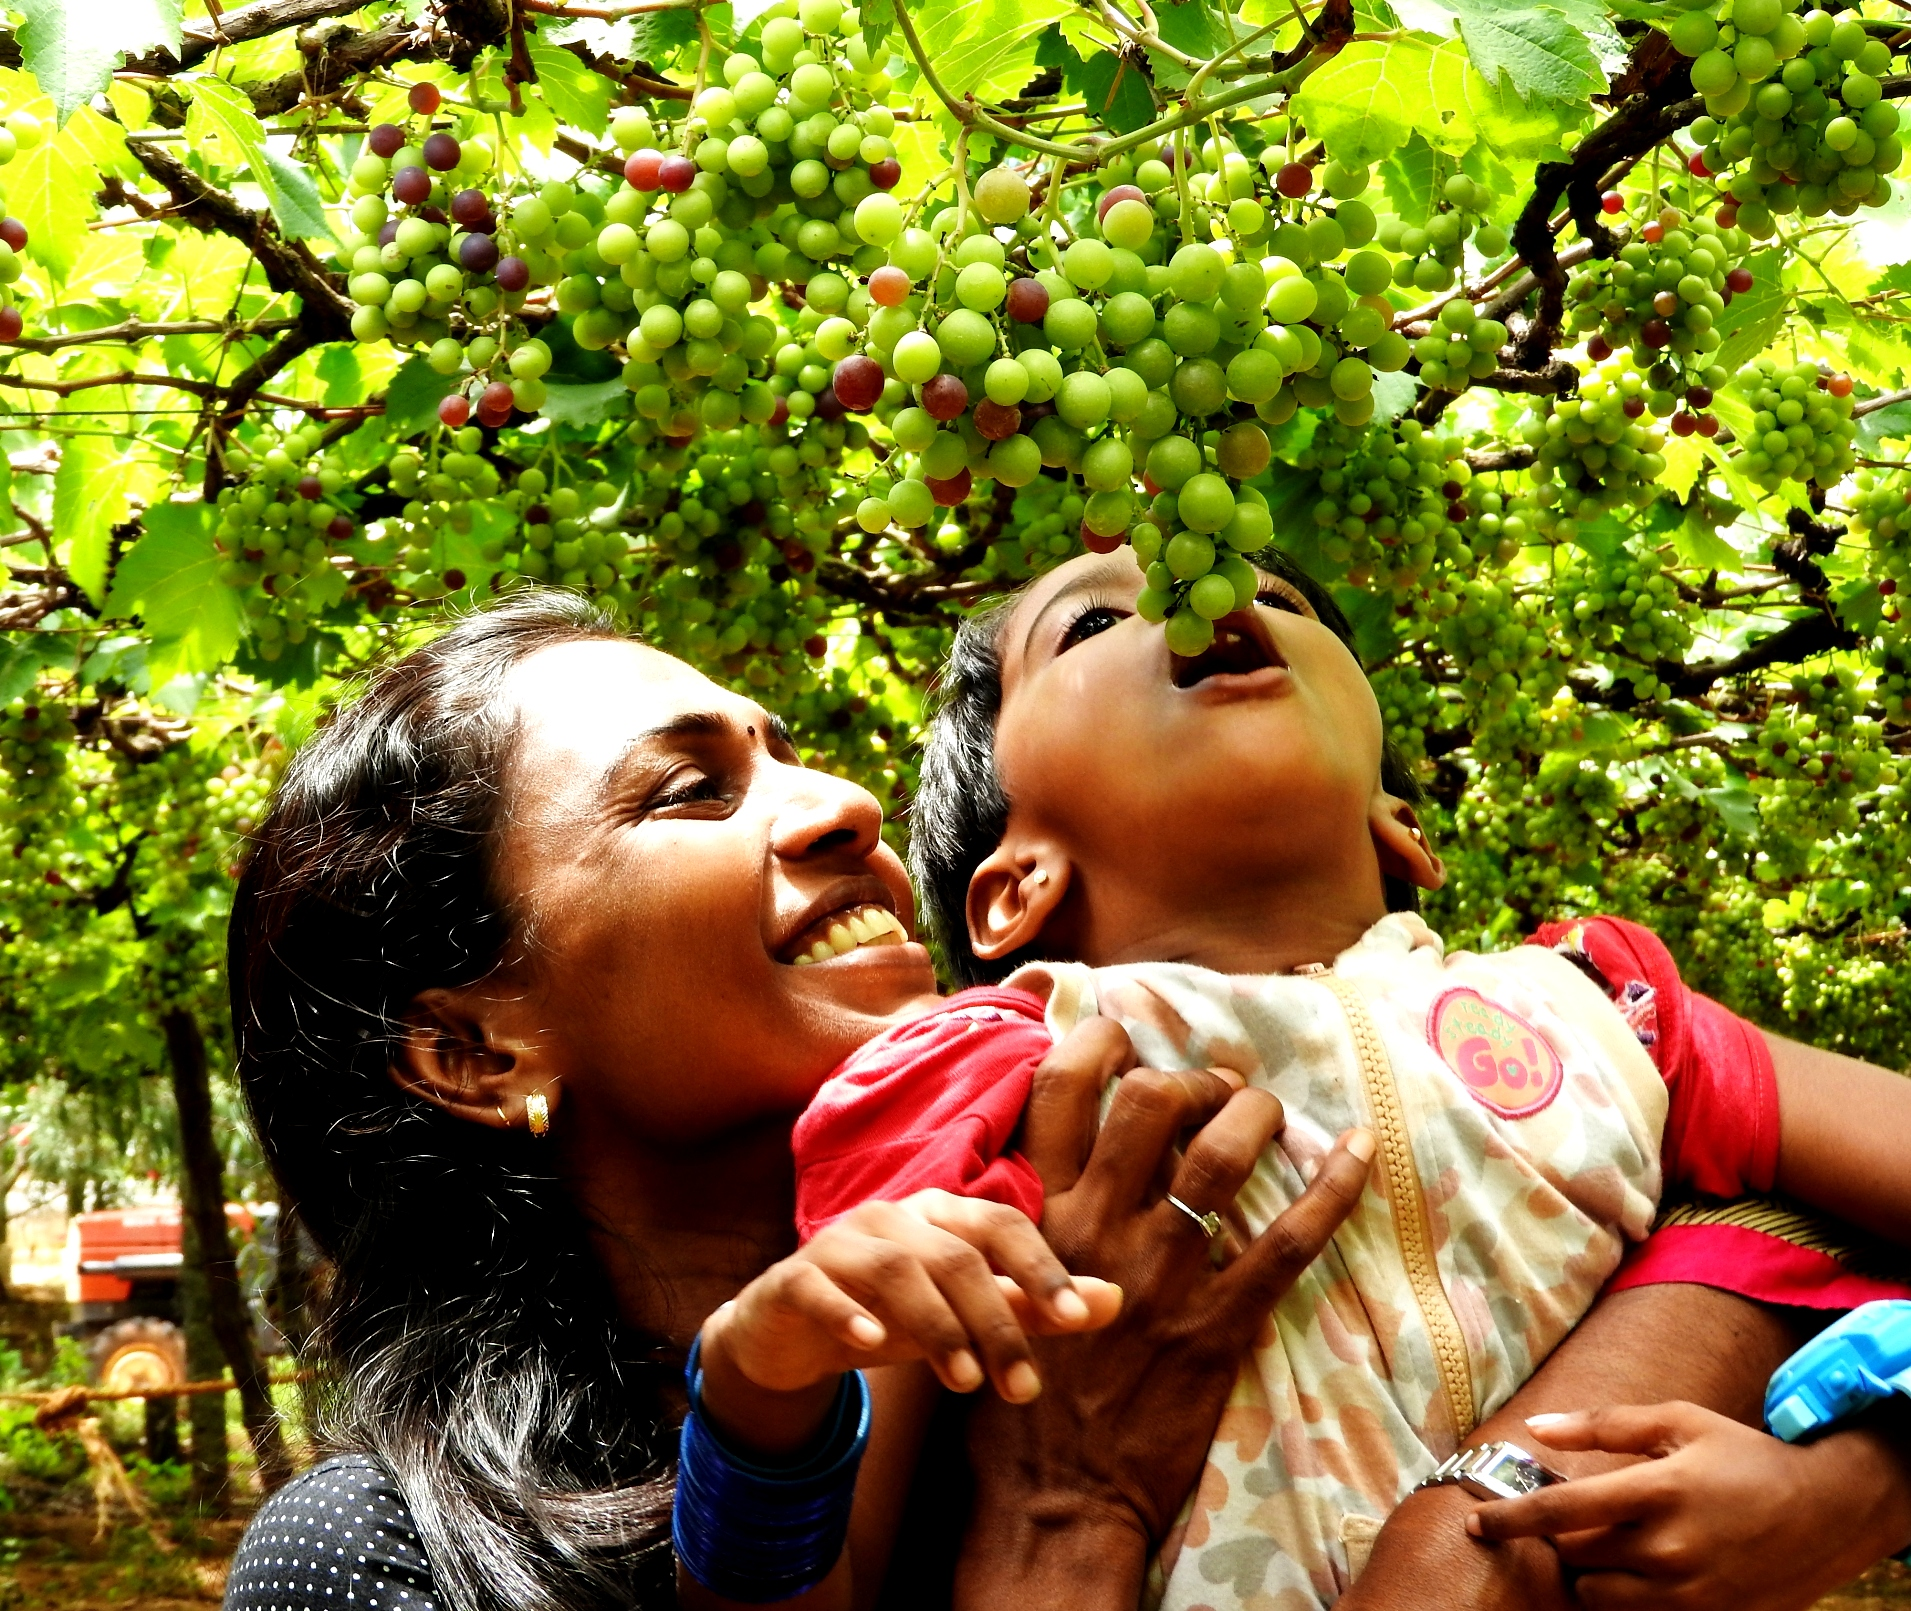 I was always captivated by the spirit of the kid to have a bite of grapes directly from th e wine yard.This photo oppurtunity arrived when I ask them to pose for a snap.What I want to capture was that the joyful mommemts of having the grapes. Camera :  Nikon Coolpix P 610